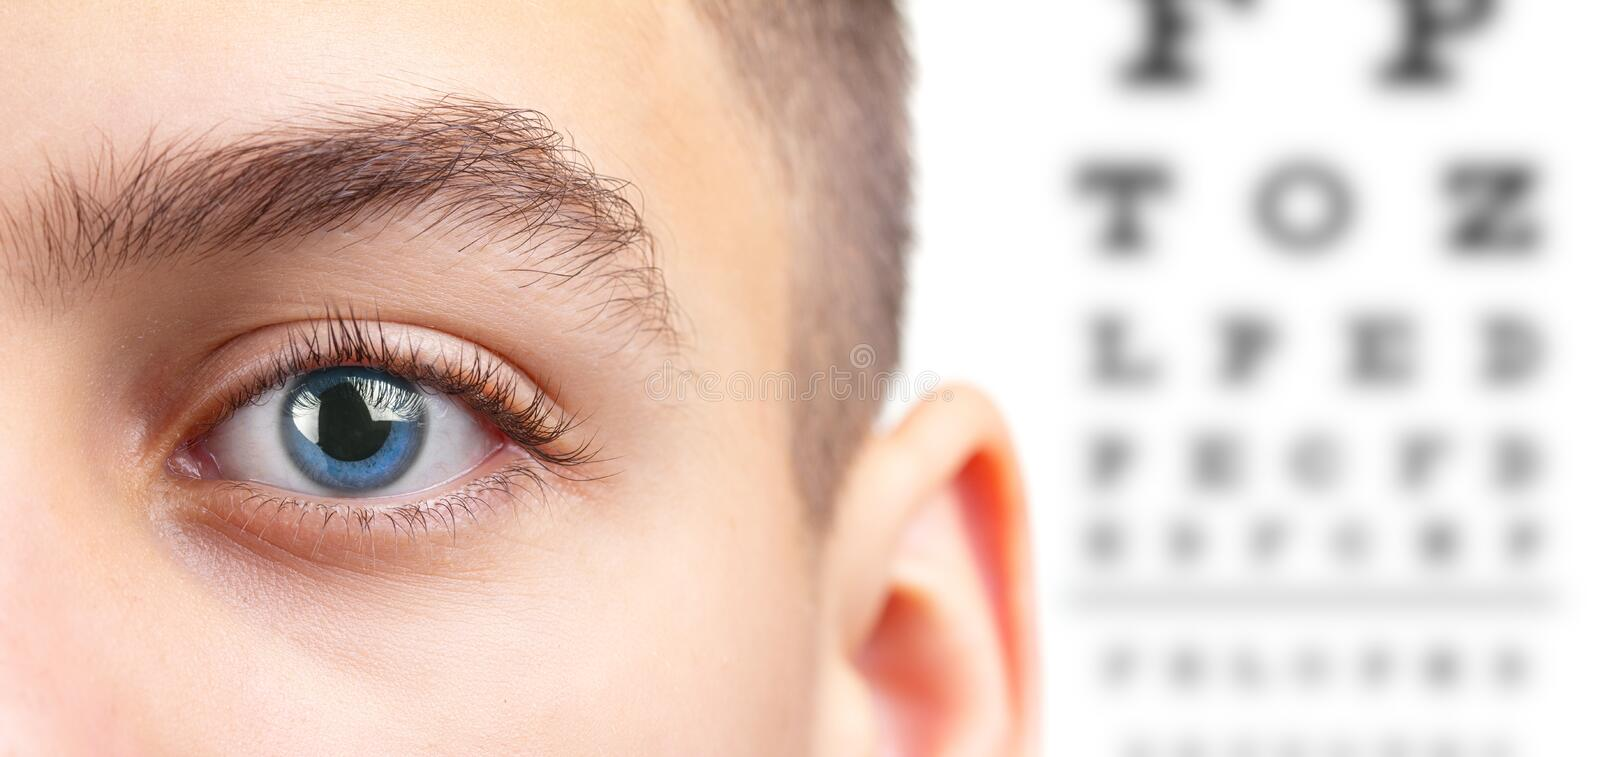 Eye eyesight ophthalmology test and vision health,  medicine sight royalty free stock images